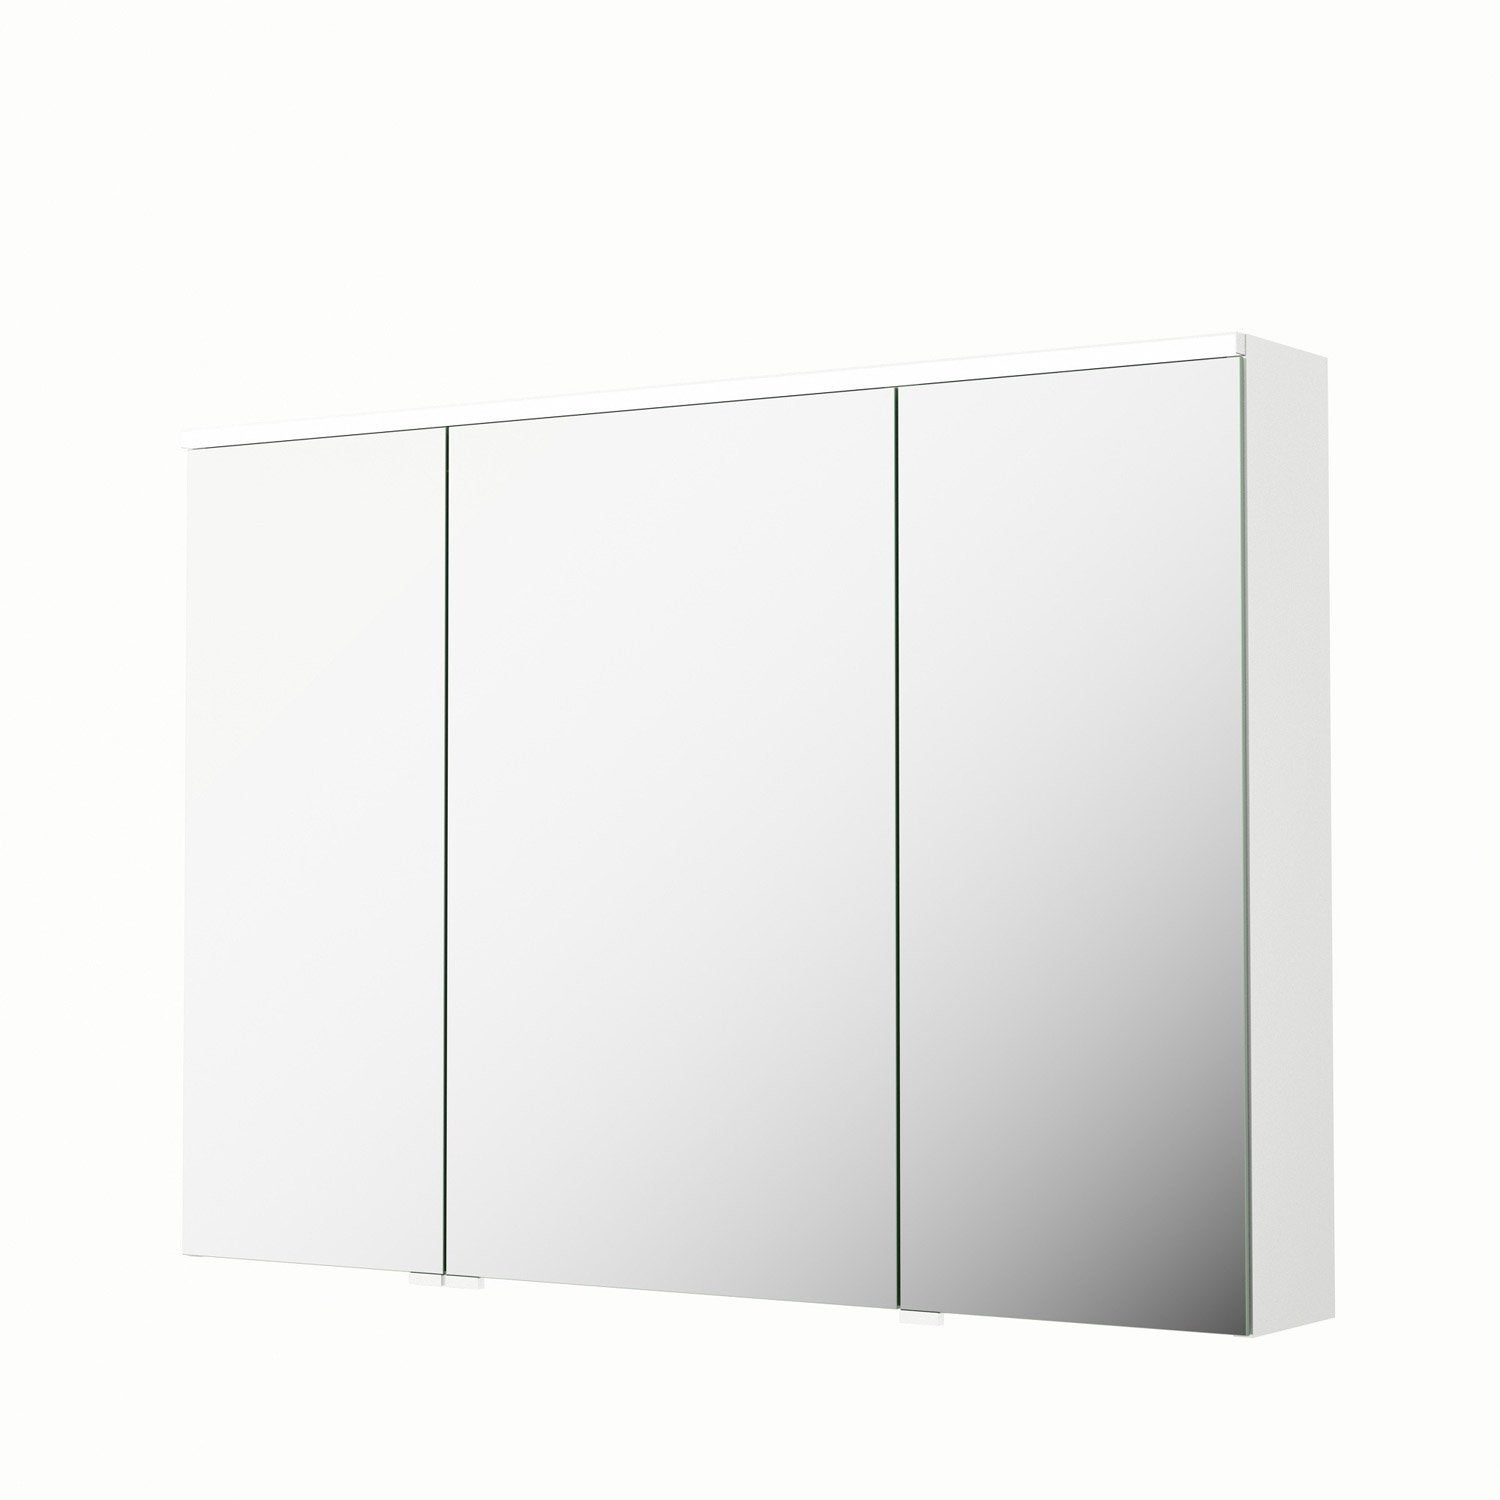 armoire de toilette lumineuse l 105 cm blanc sensea neo leroy merlin. Black Bedroom Furniture Sets. Home Design Ideas